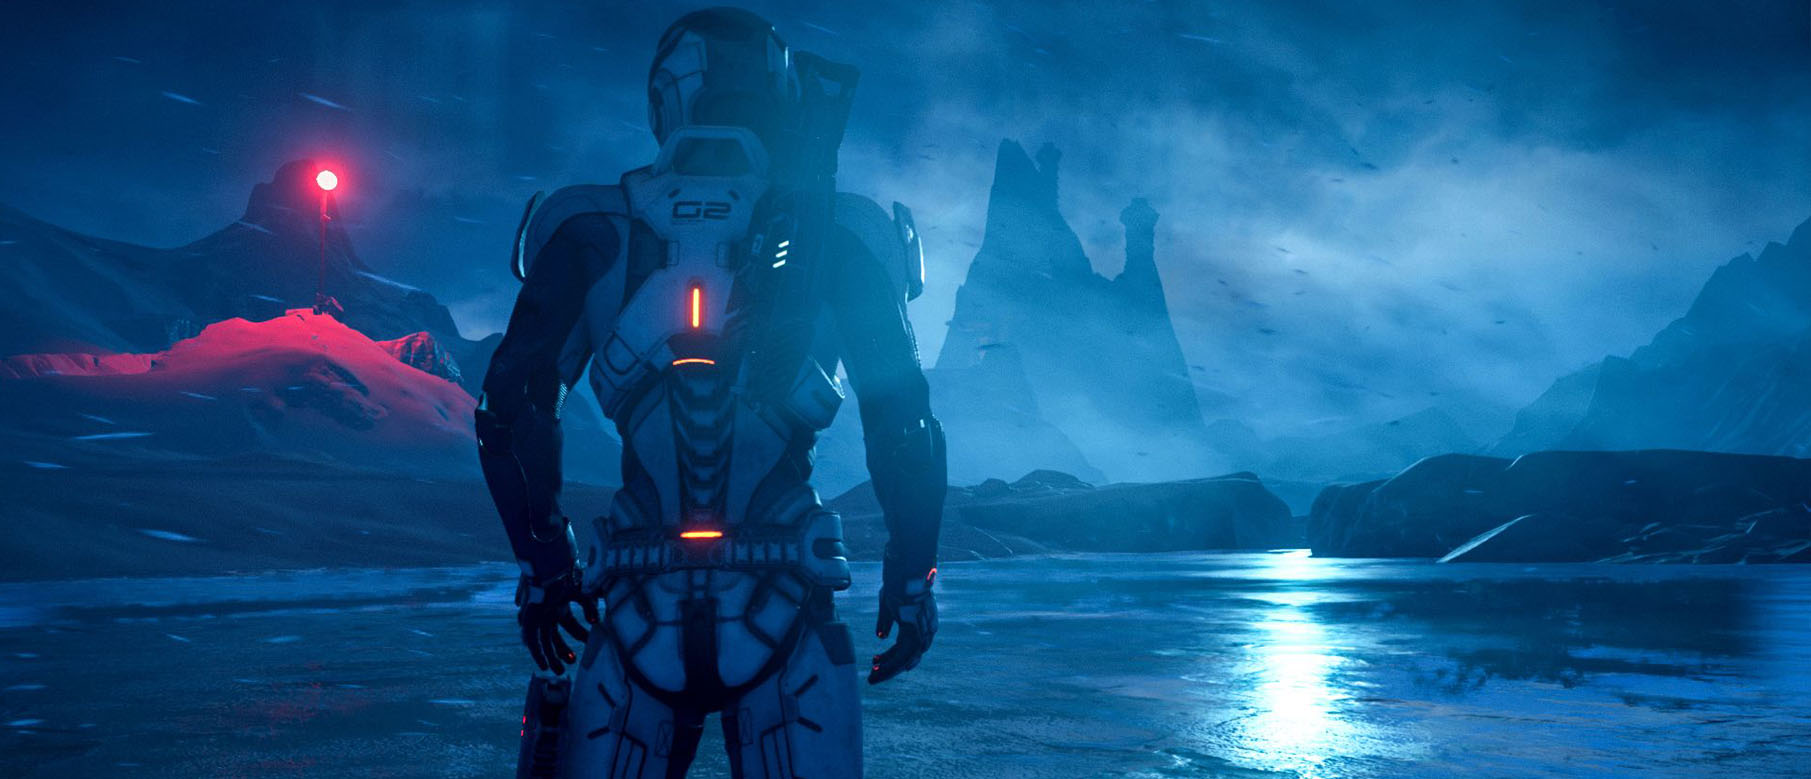 Изображение к Новый кинематографический трейлер Mass Effect: Andromeda уже завтра